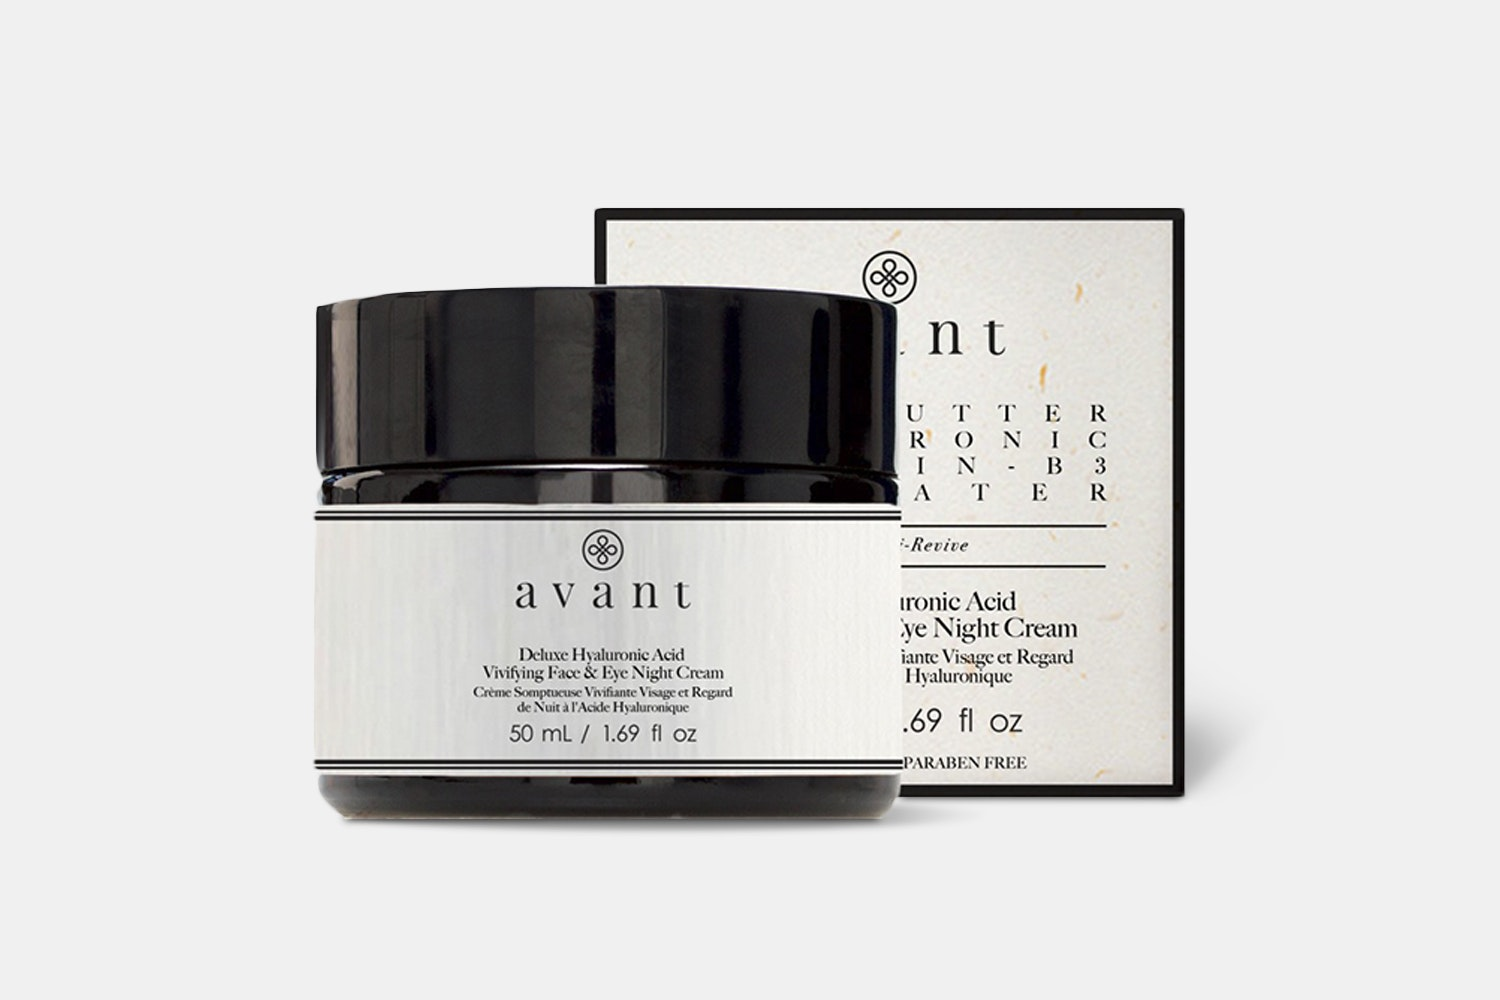 50ml Deluxe Hyaluronic Acid Vivifying Face & Eye Night Cream (+ $15)